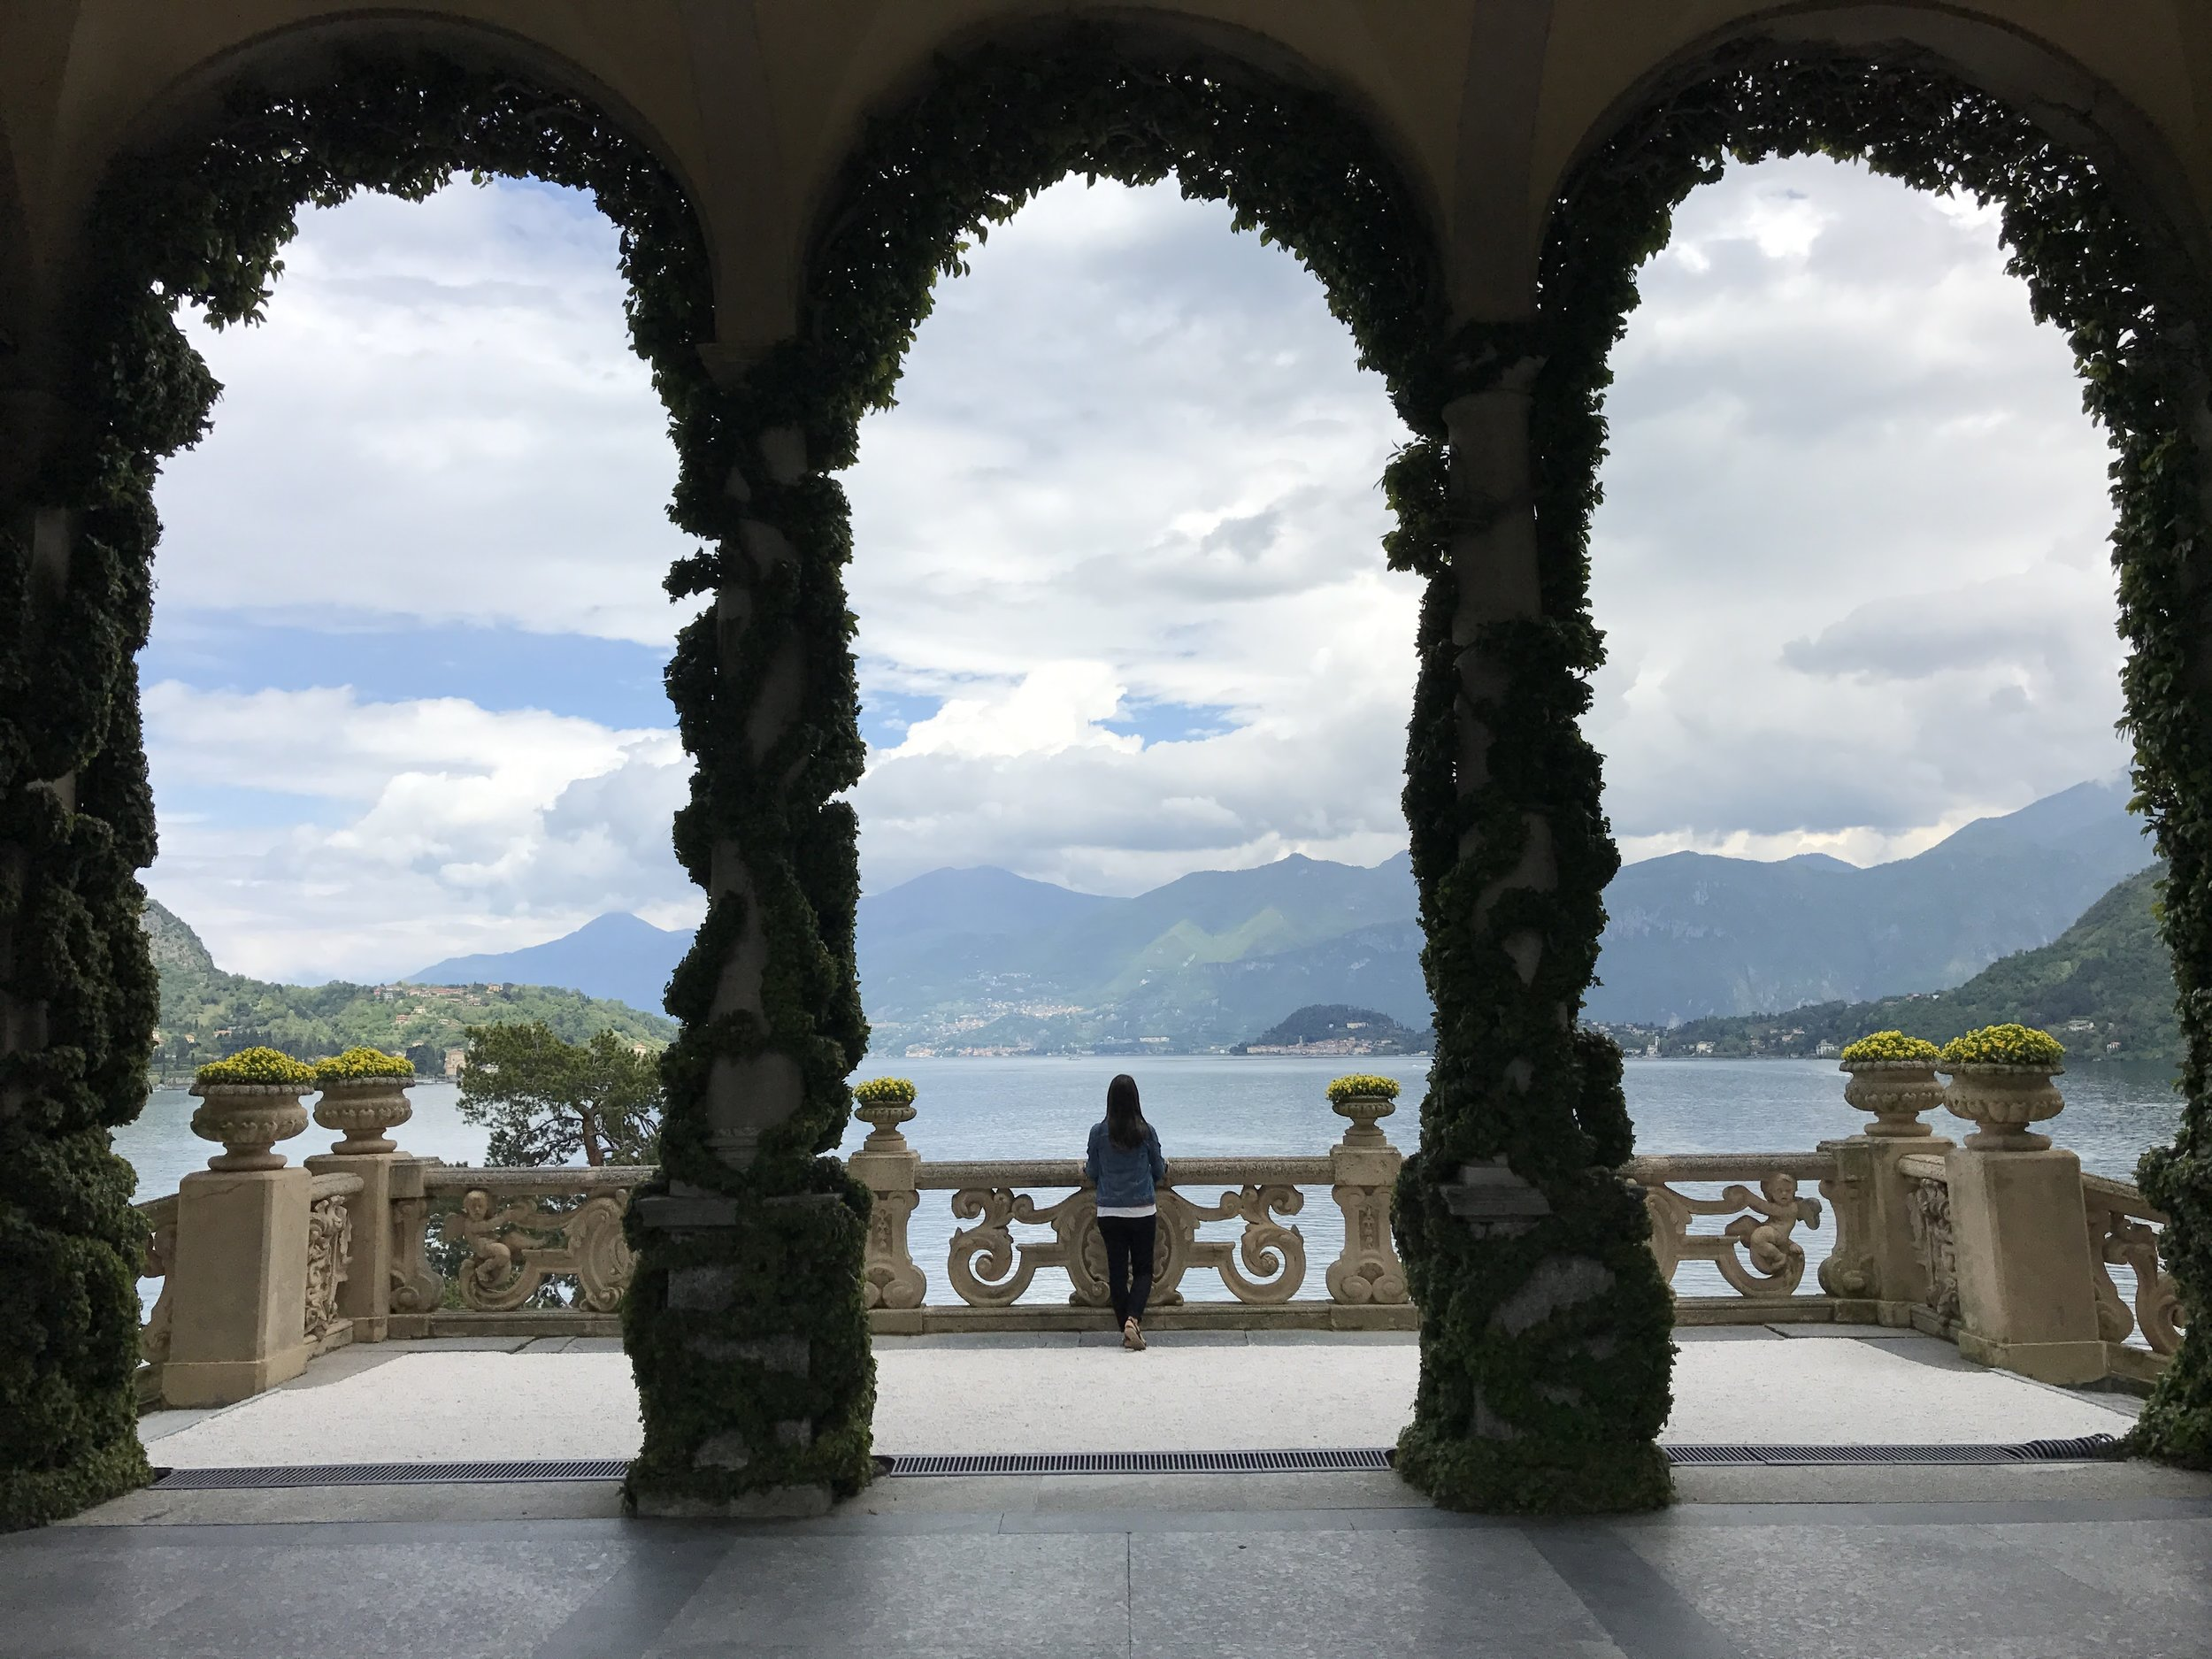 One of the many views of Lake Como from Villa Balbaniello